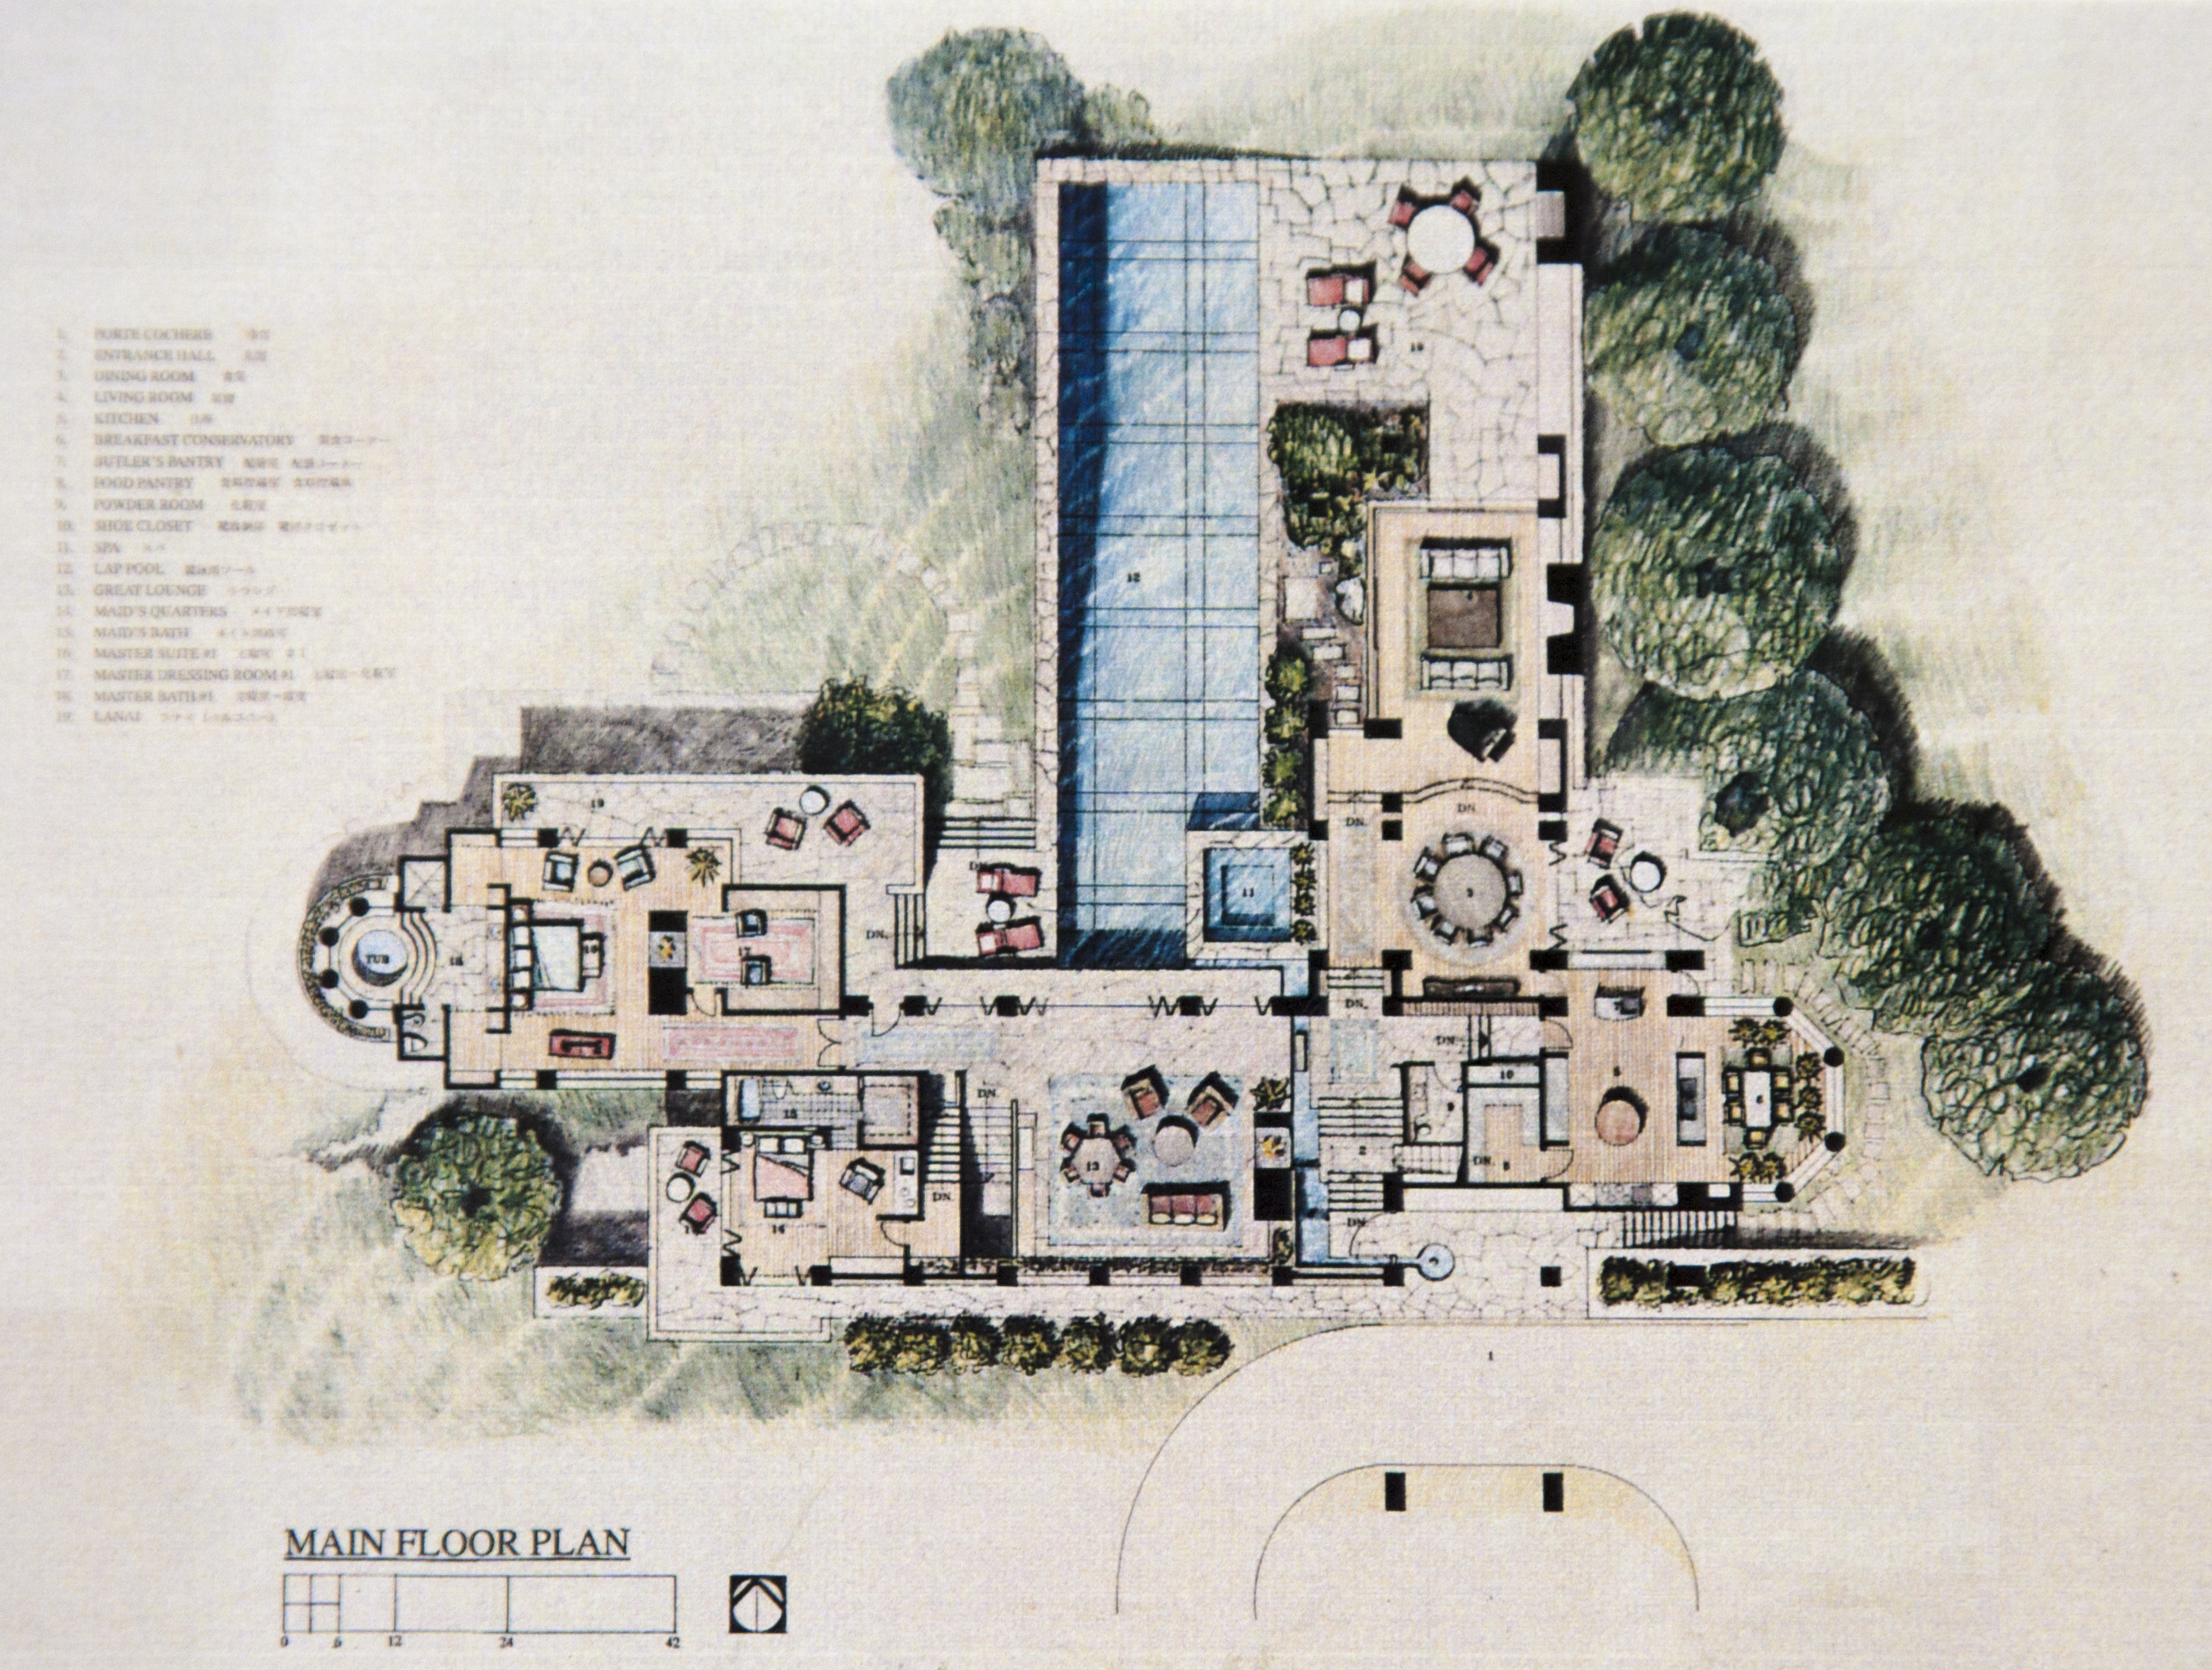 The house is designed to celebrate its surroundings by integrating interior and exterior spaces.  This is enhanced by the use of expansive windows and doorways; the flow of waterfeatures from the exterior to the interior; and by designing the plan of the house to flow with the natural contours of the site.